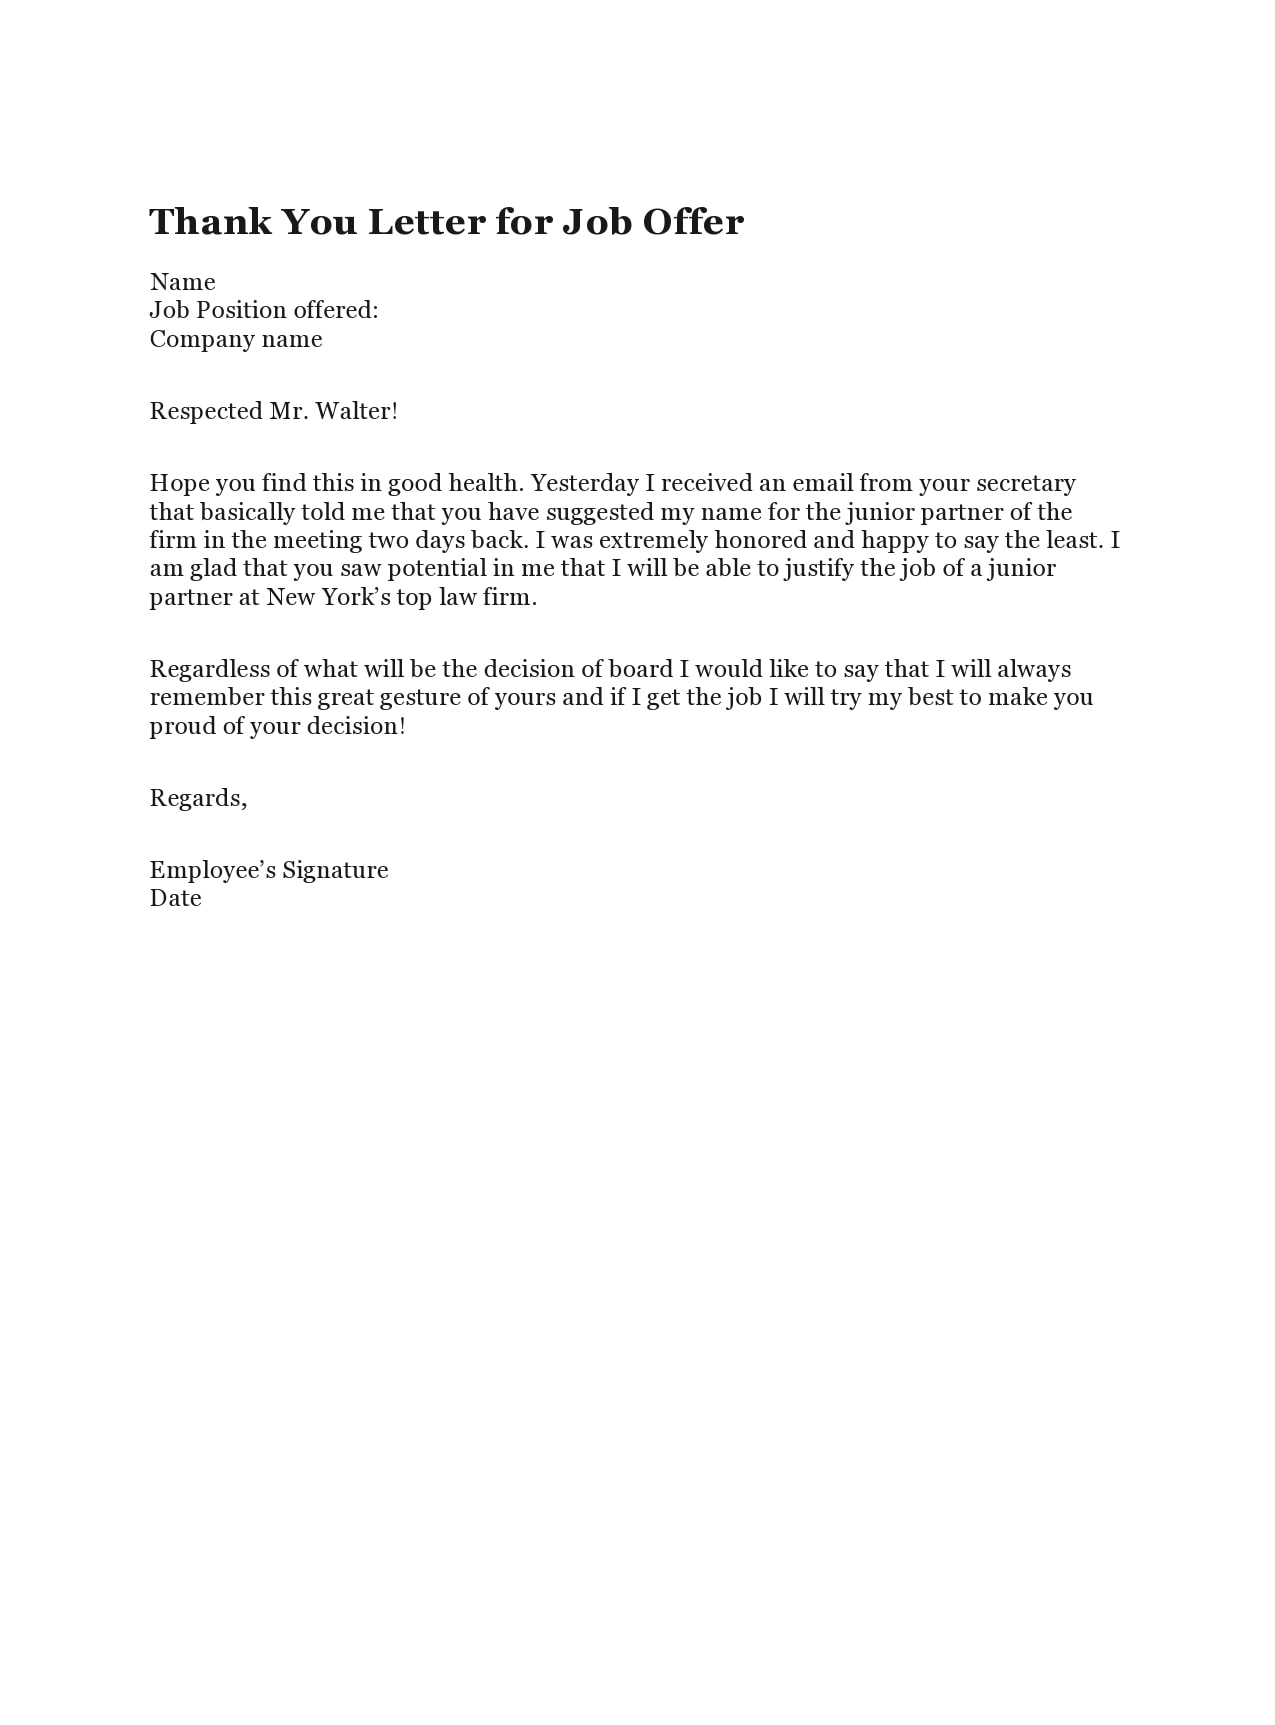 Thank You Letter For Choosing Our Company from templatearchive.com